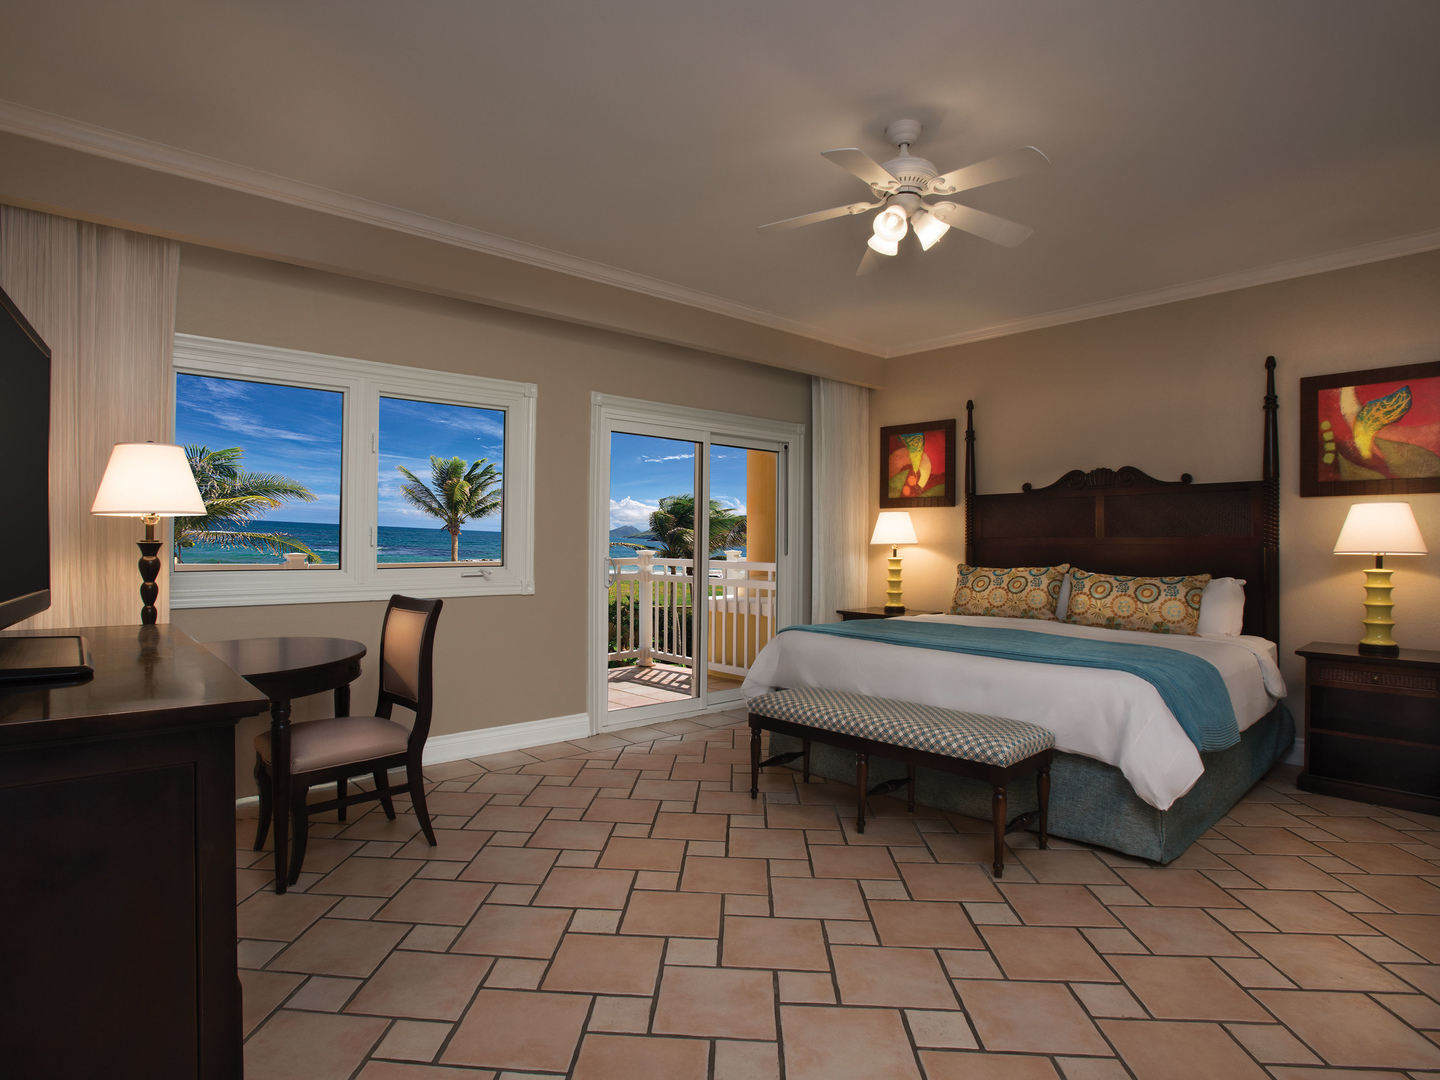 Marriott's St. Kitts Beach Club Villa Guest Bedroom - King. Marriott's St. Kitts Beach Club is located in St. Kitts,  St. Kitts and Nevis.